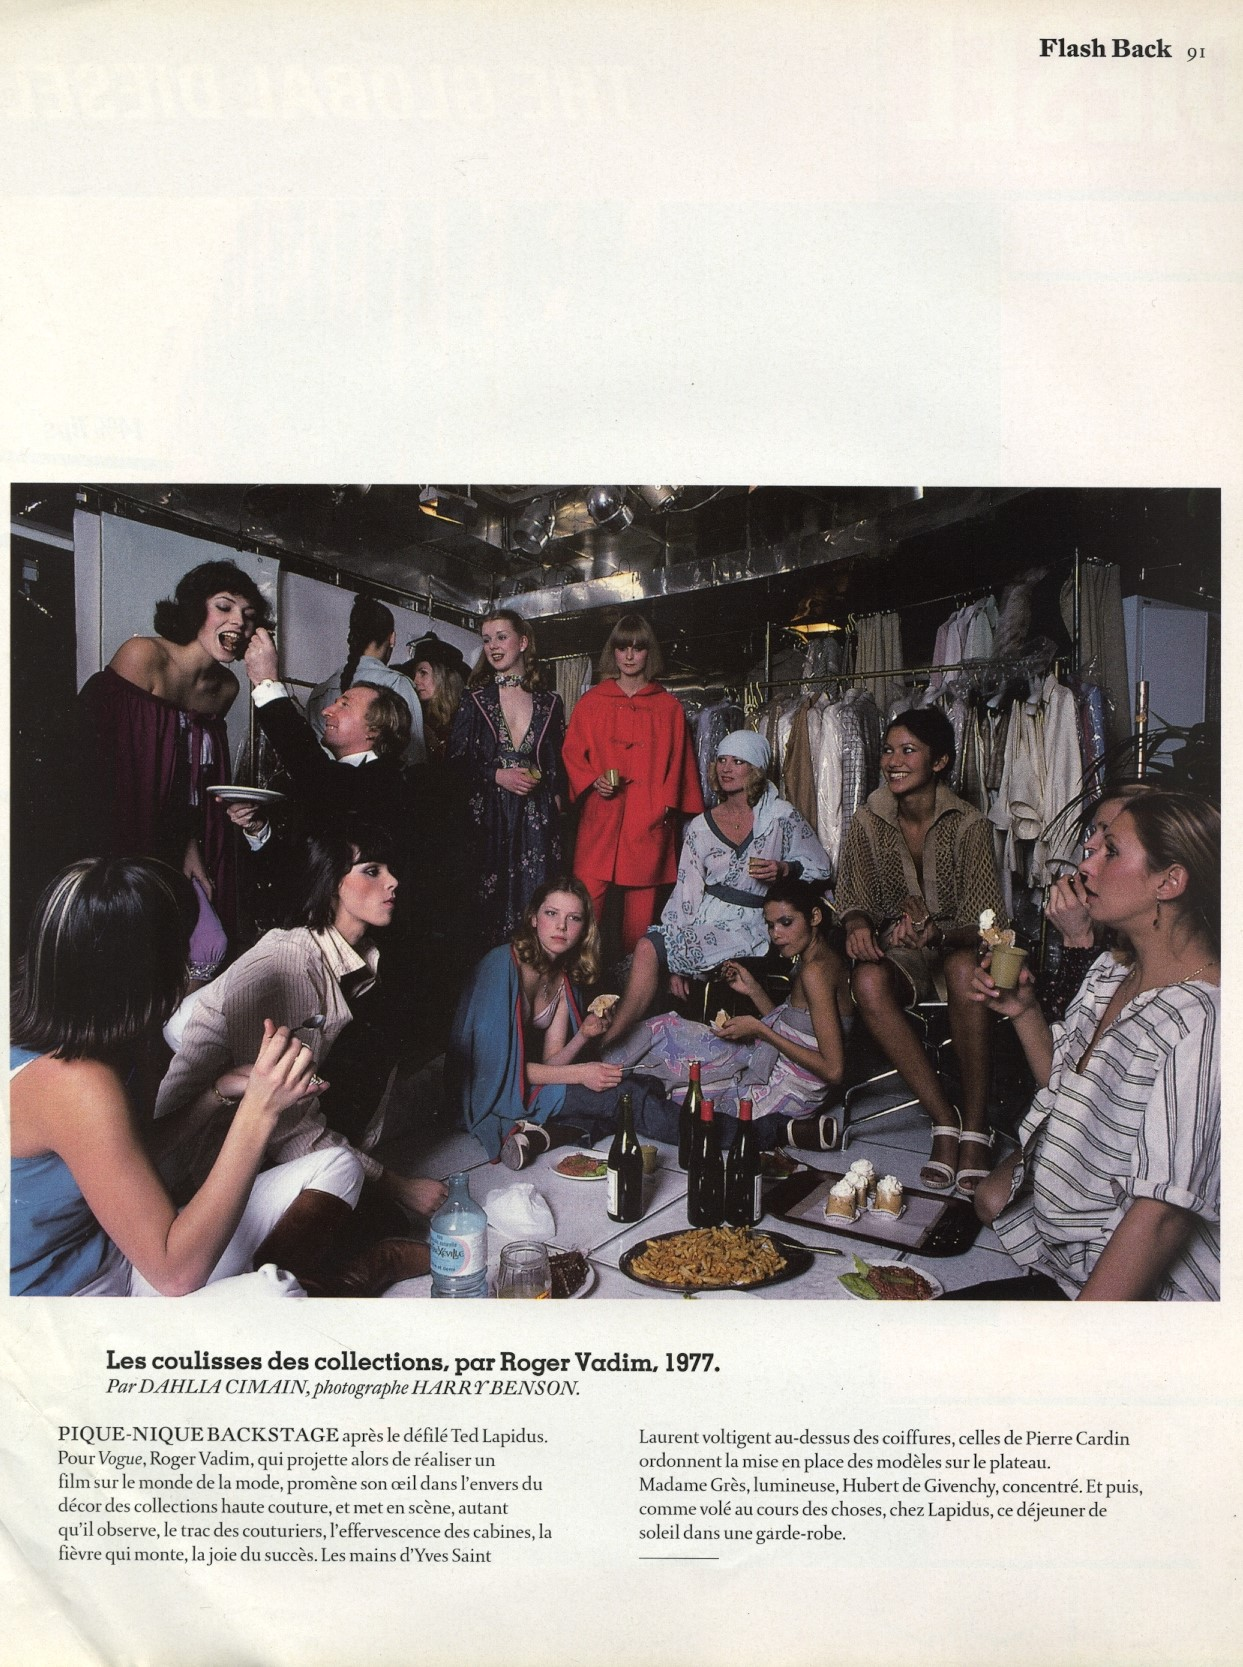 les coulisses des collections par roger vadim 1977 photography harry benson vogue paris